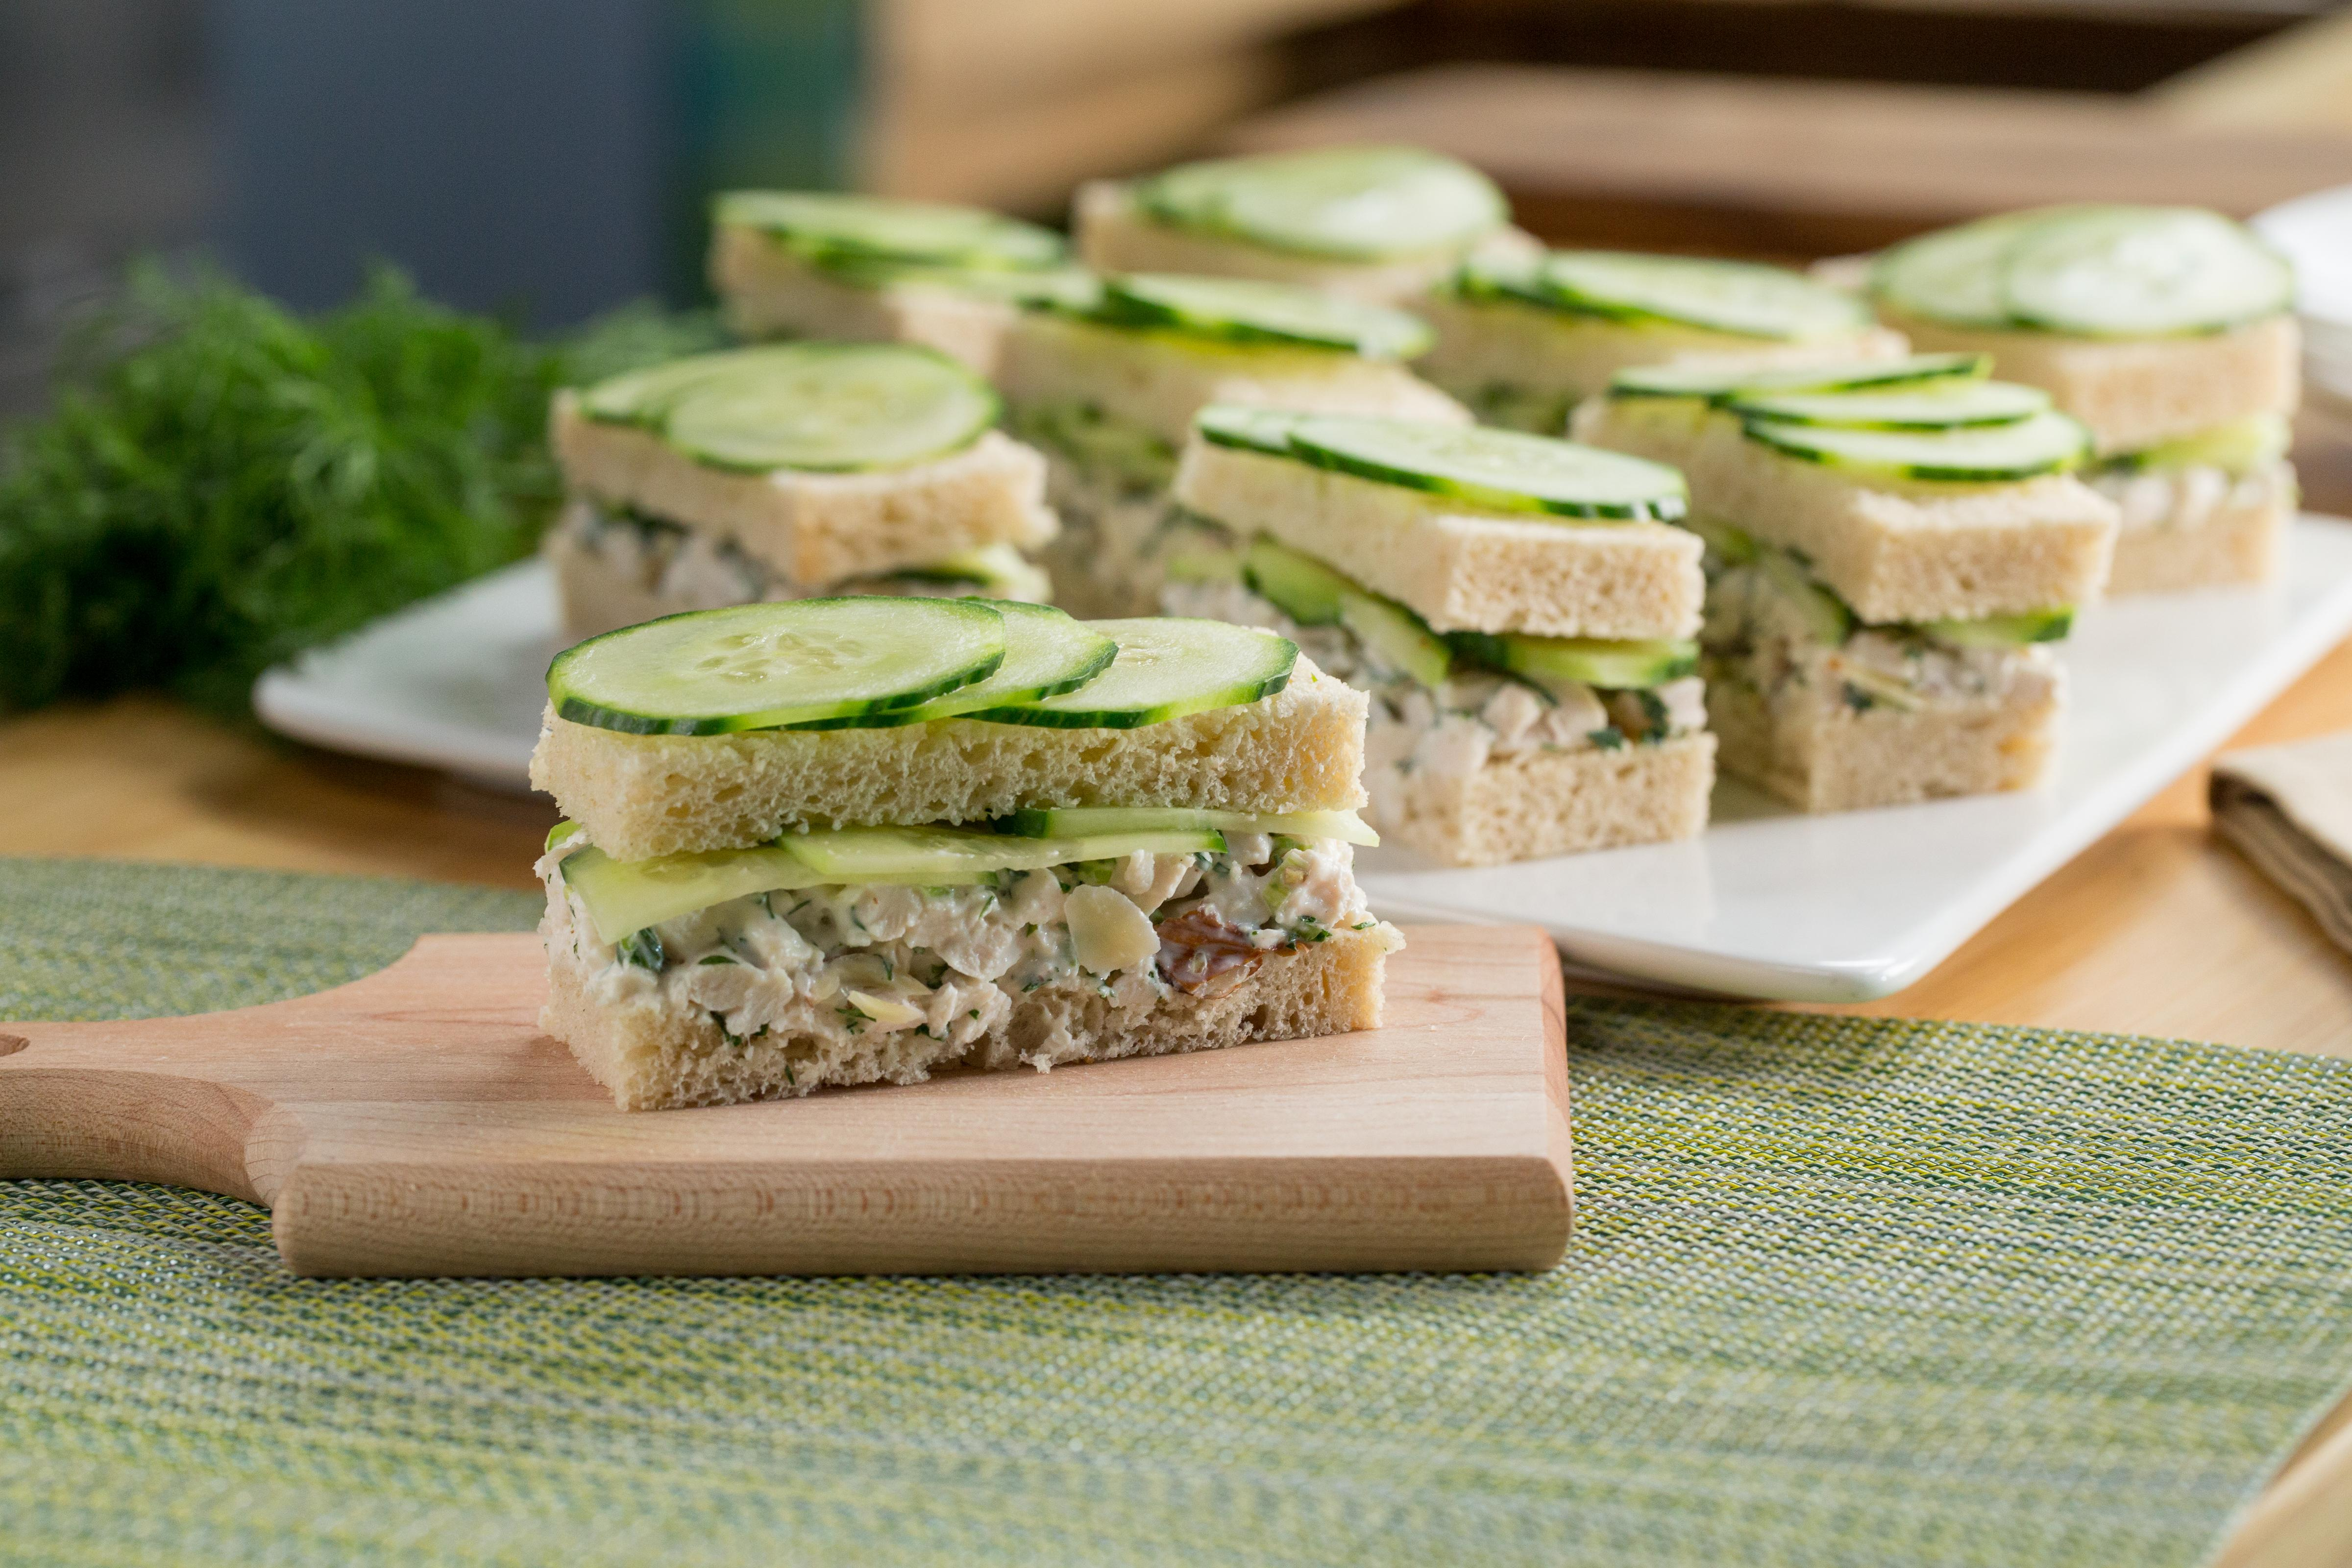 Throw a tea party and make these herby chicken salad sandwiches